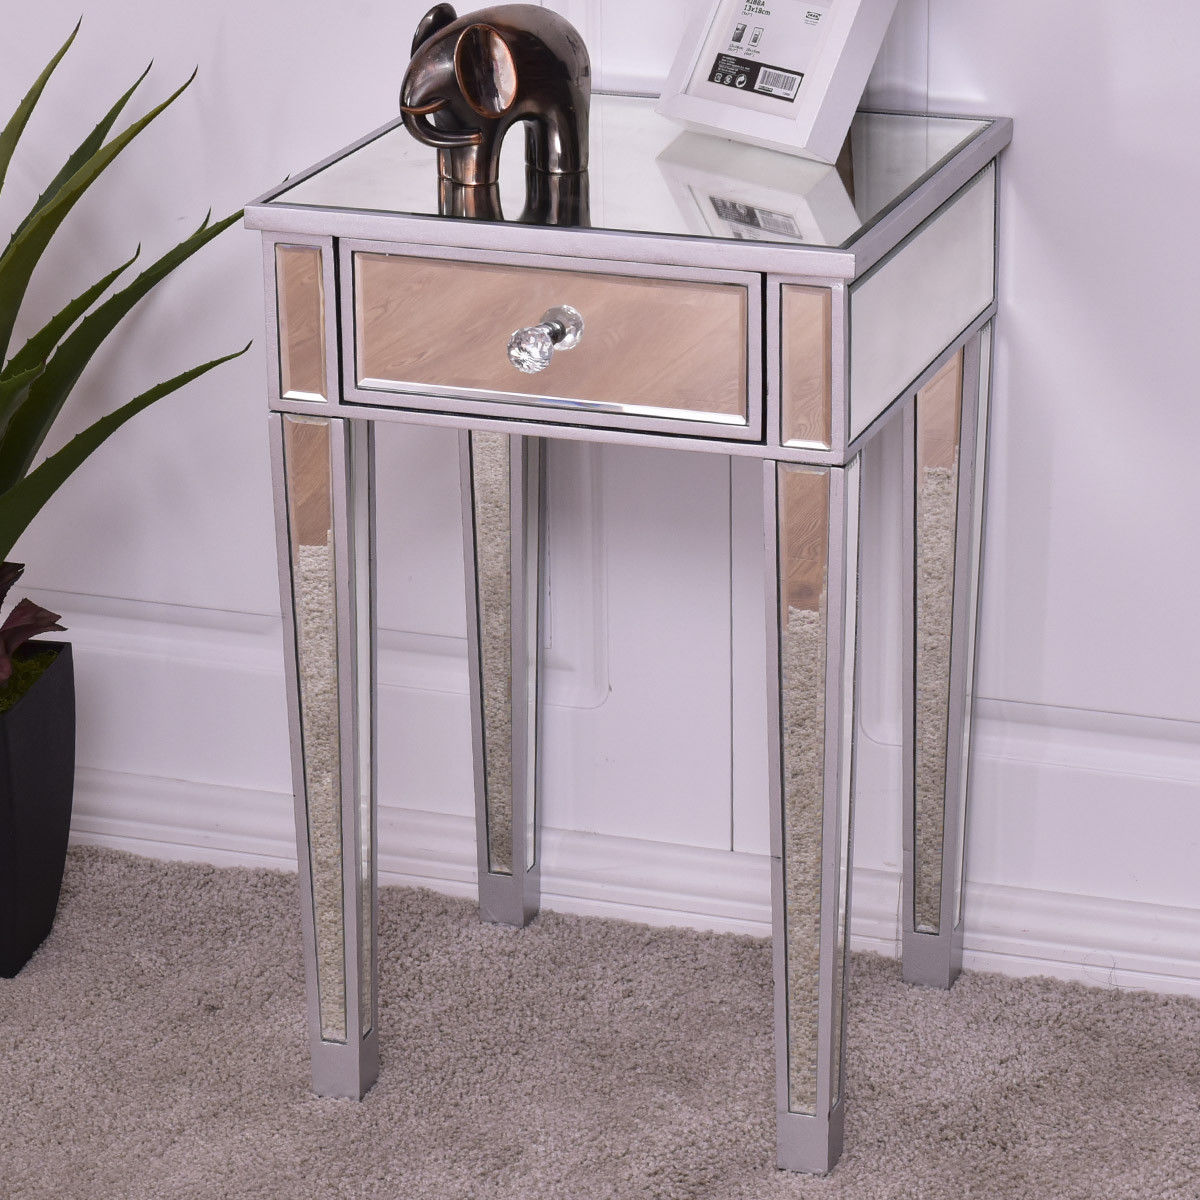 все цены на Giantex Mirrored Accent Table Nightstand End Table Luxury Modern Bedside Storage Cabinet with Drawer Coffee Table HW56404